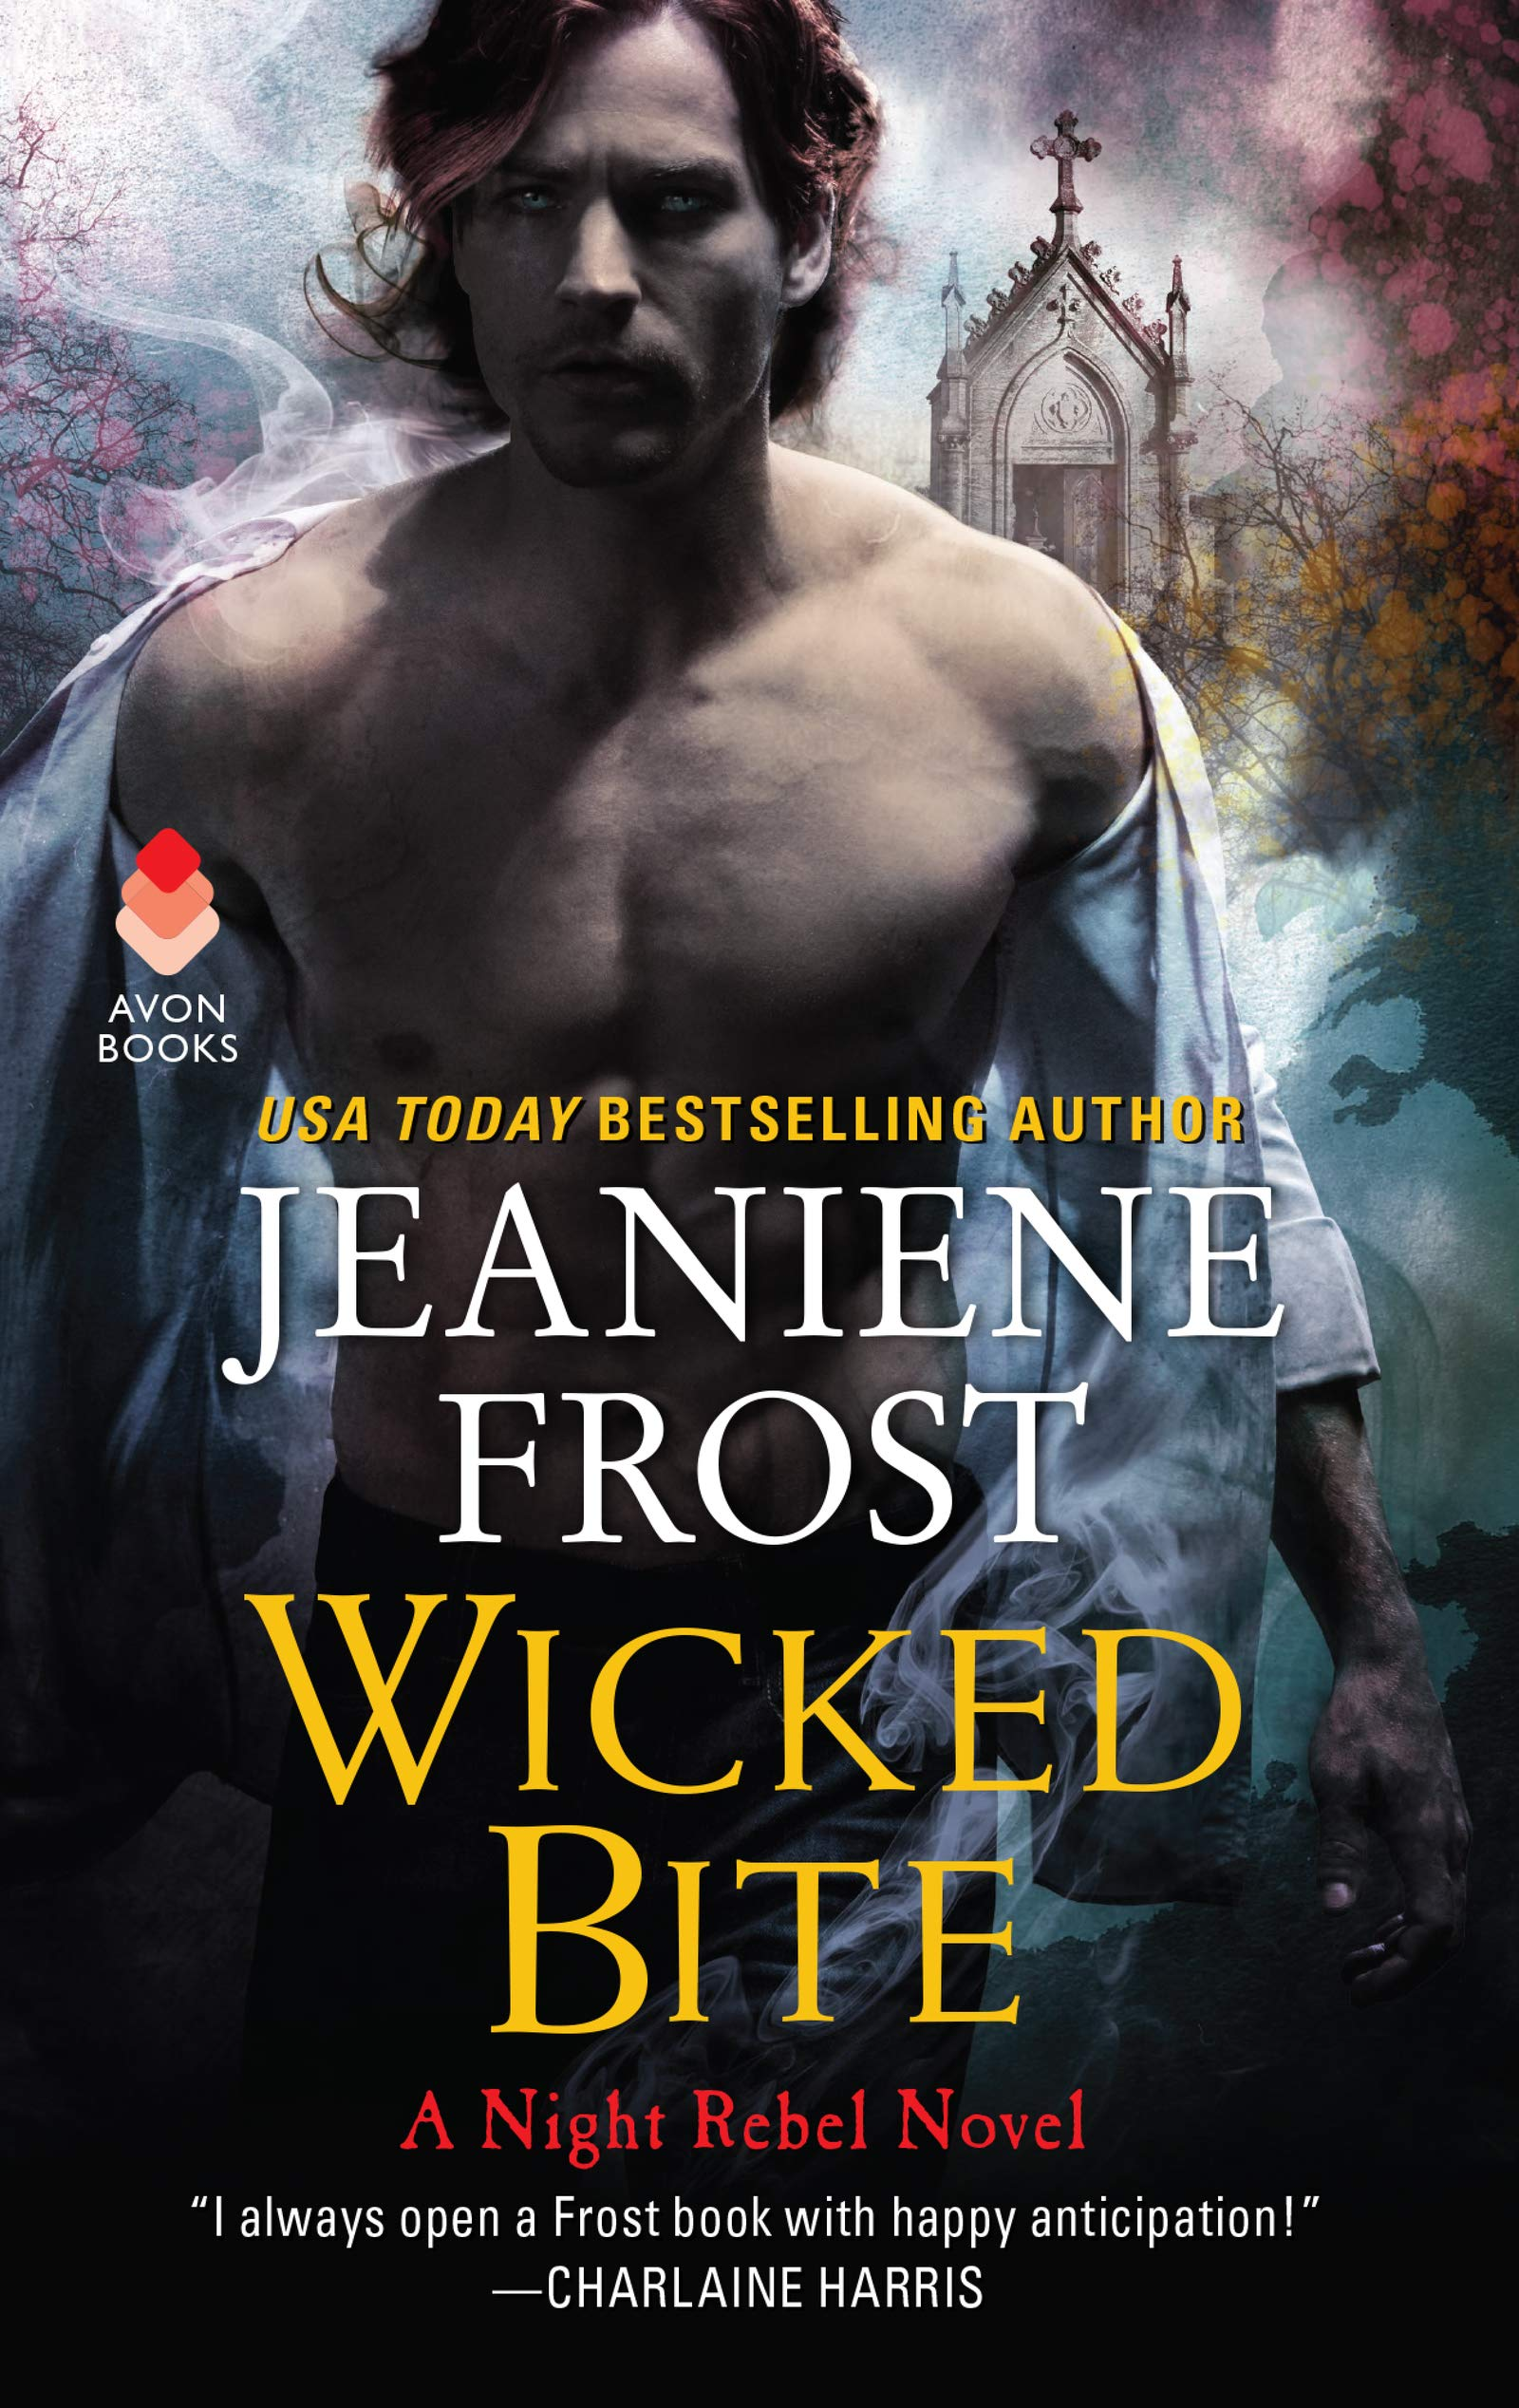 Wicked Bite: A Night Rebel Novel (#2)